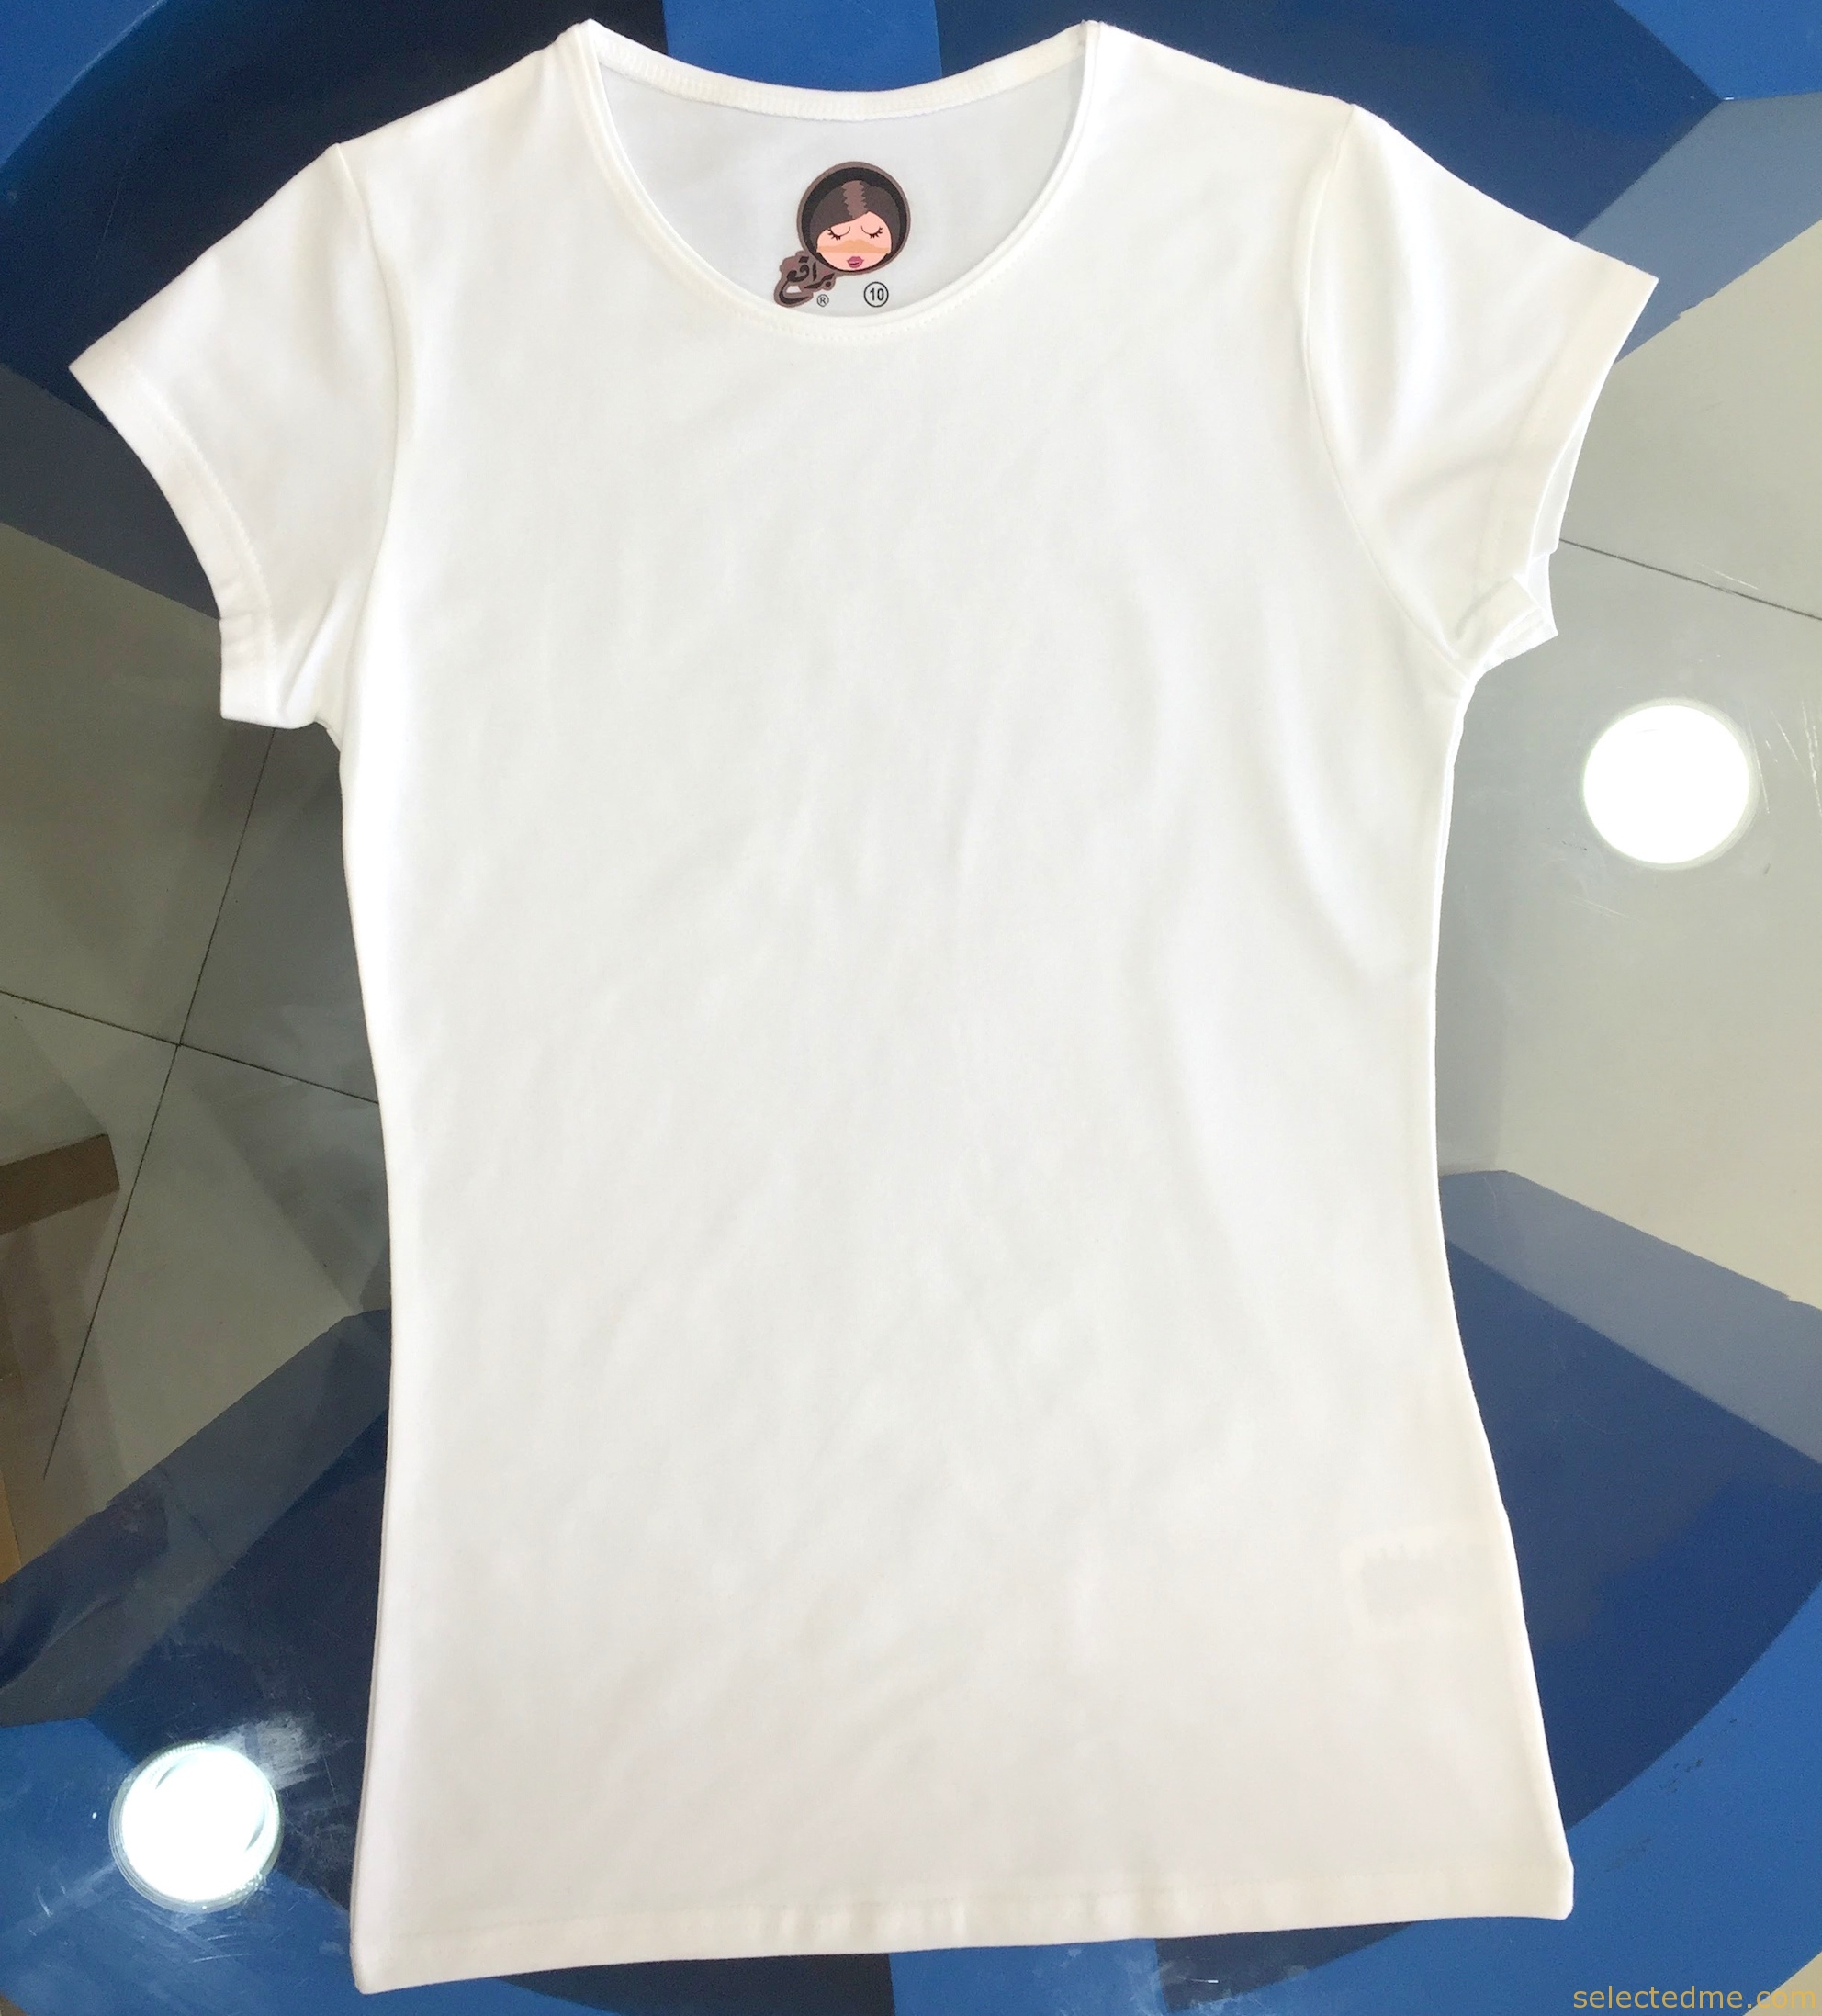 best blank t shirts for screen printing women wear wholesale suppliers